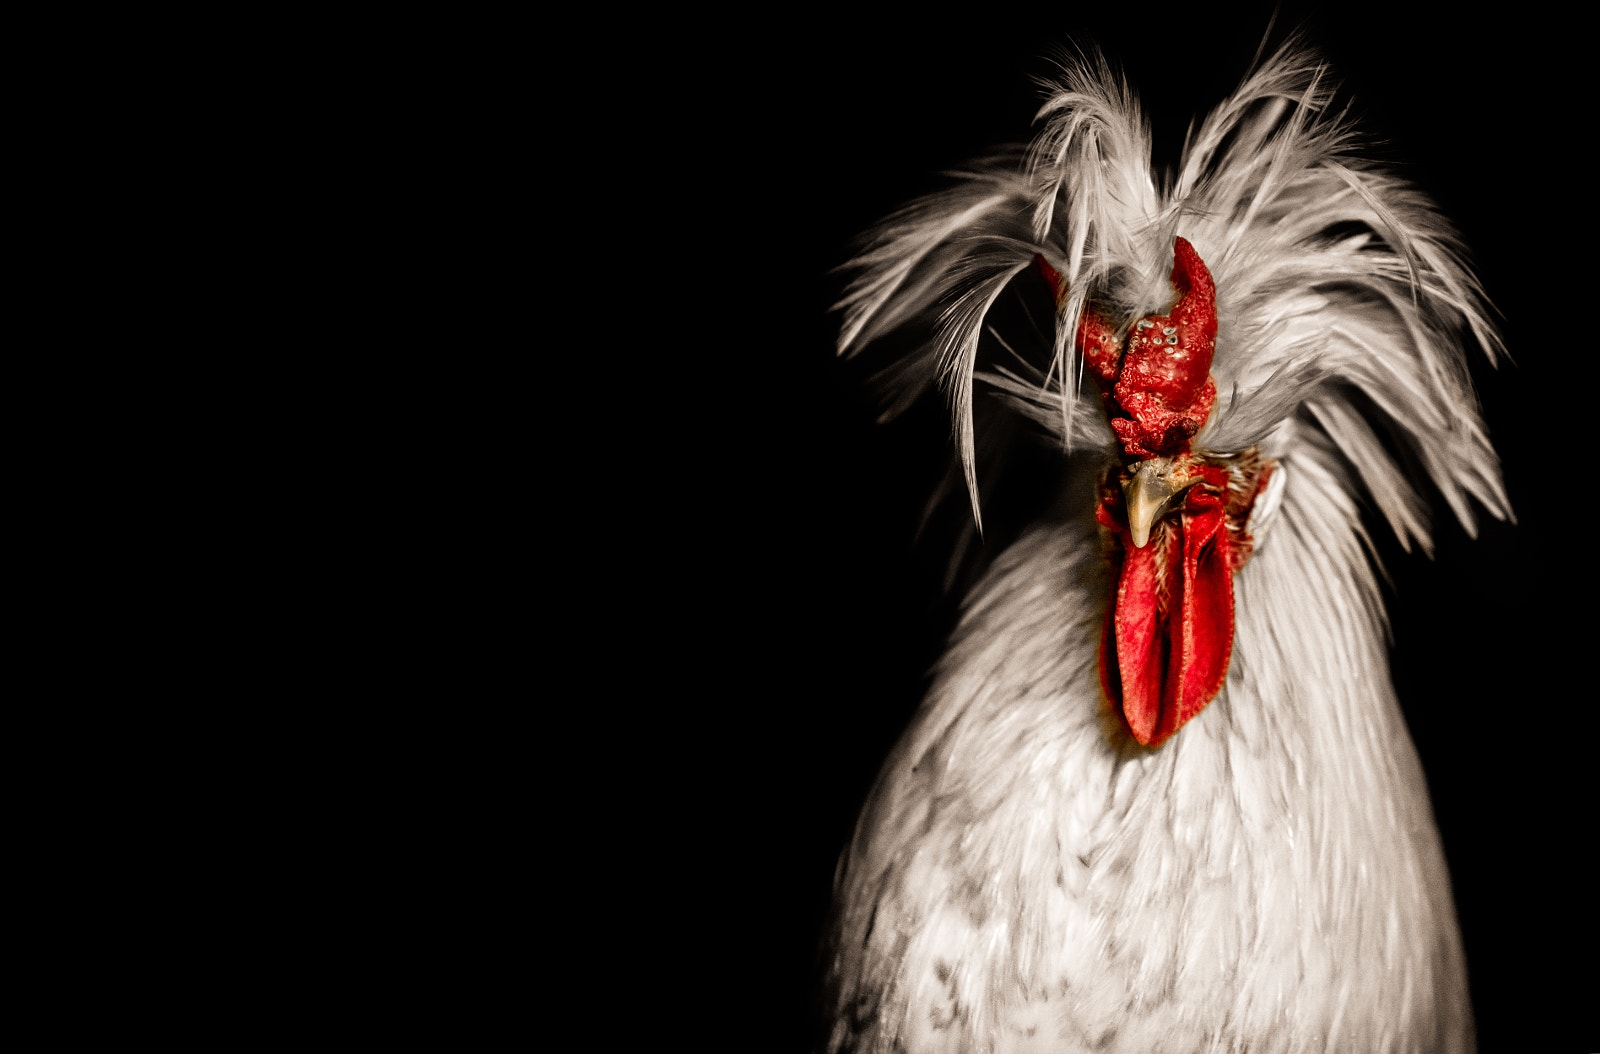 Regal Rooster Photos to Ring in the Lunar New Year!